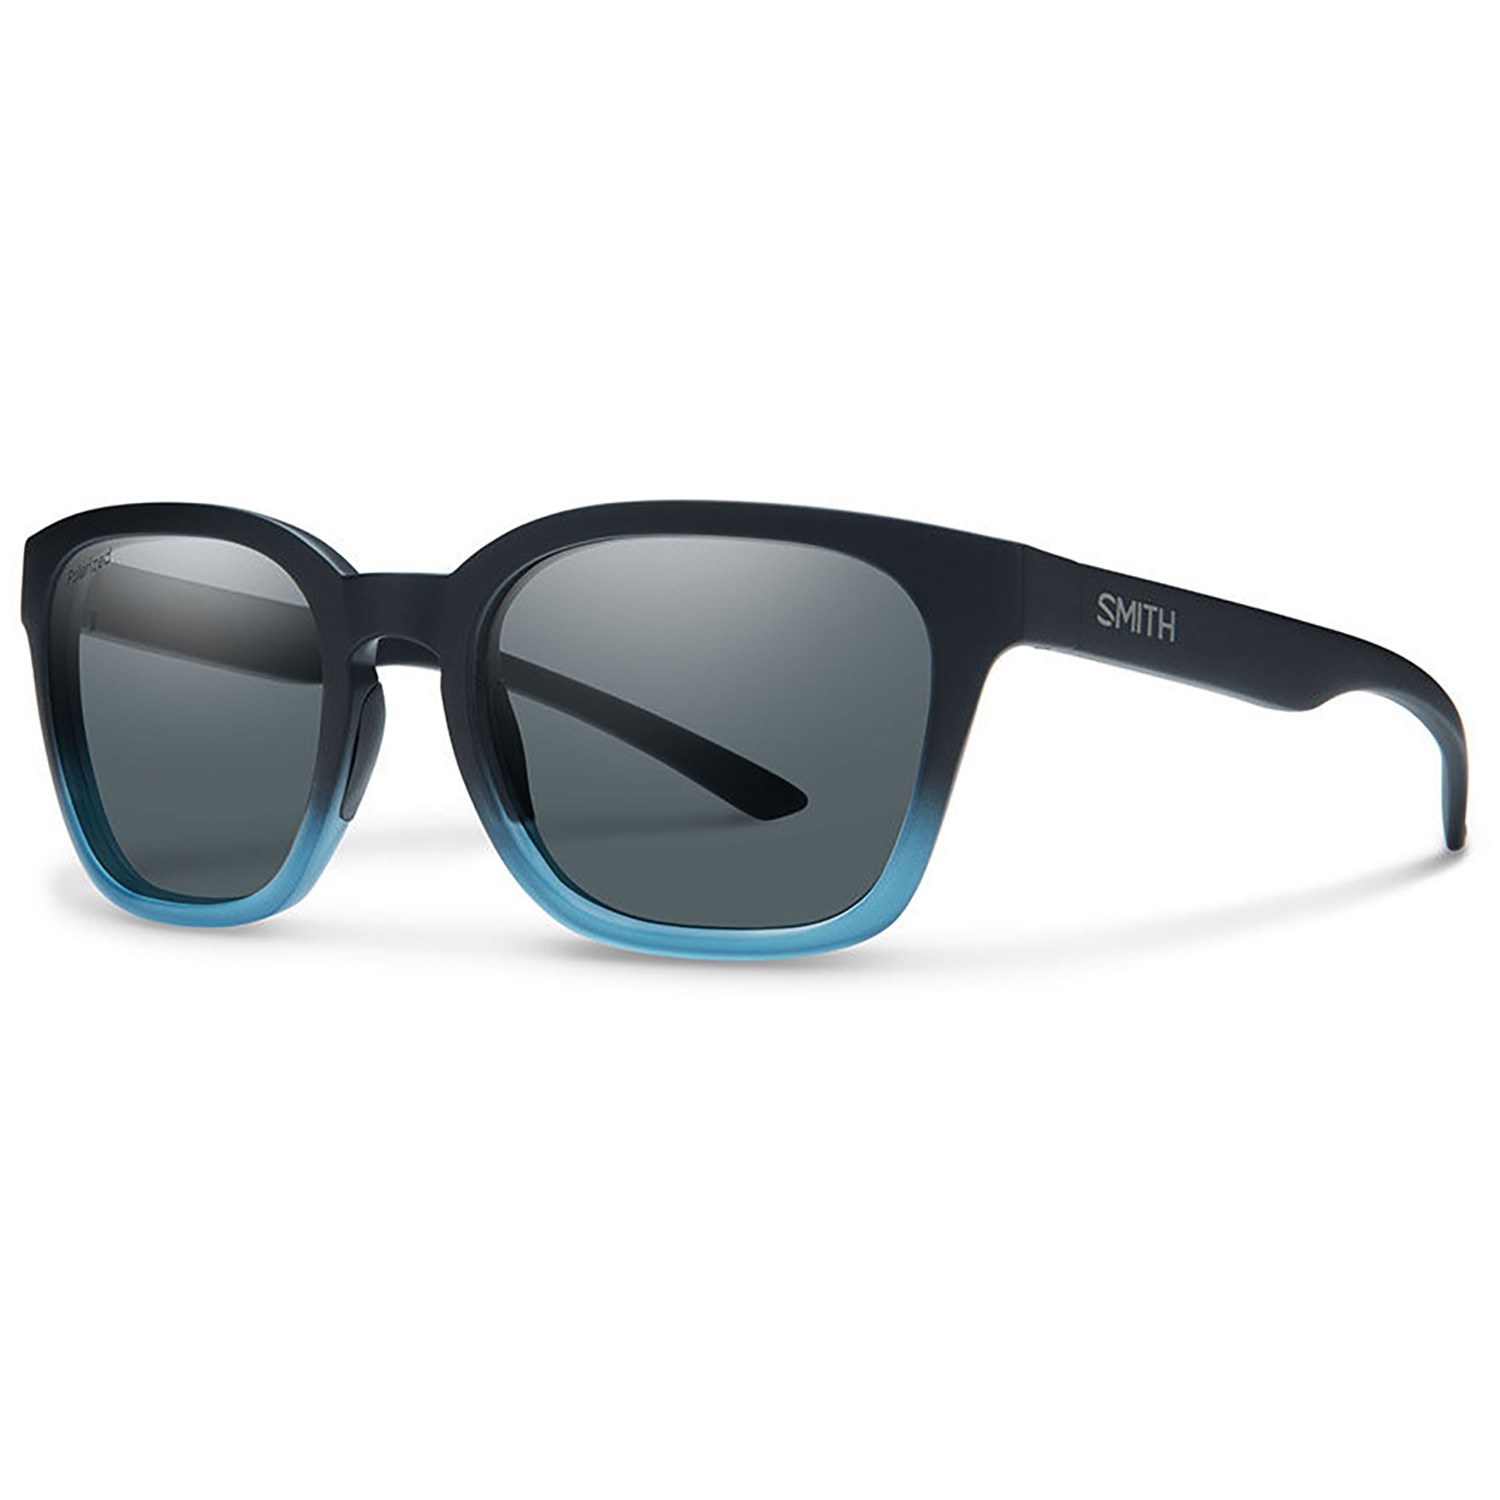 sunglasses outlet  Smith Founder Slim Sunglasses $9900